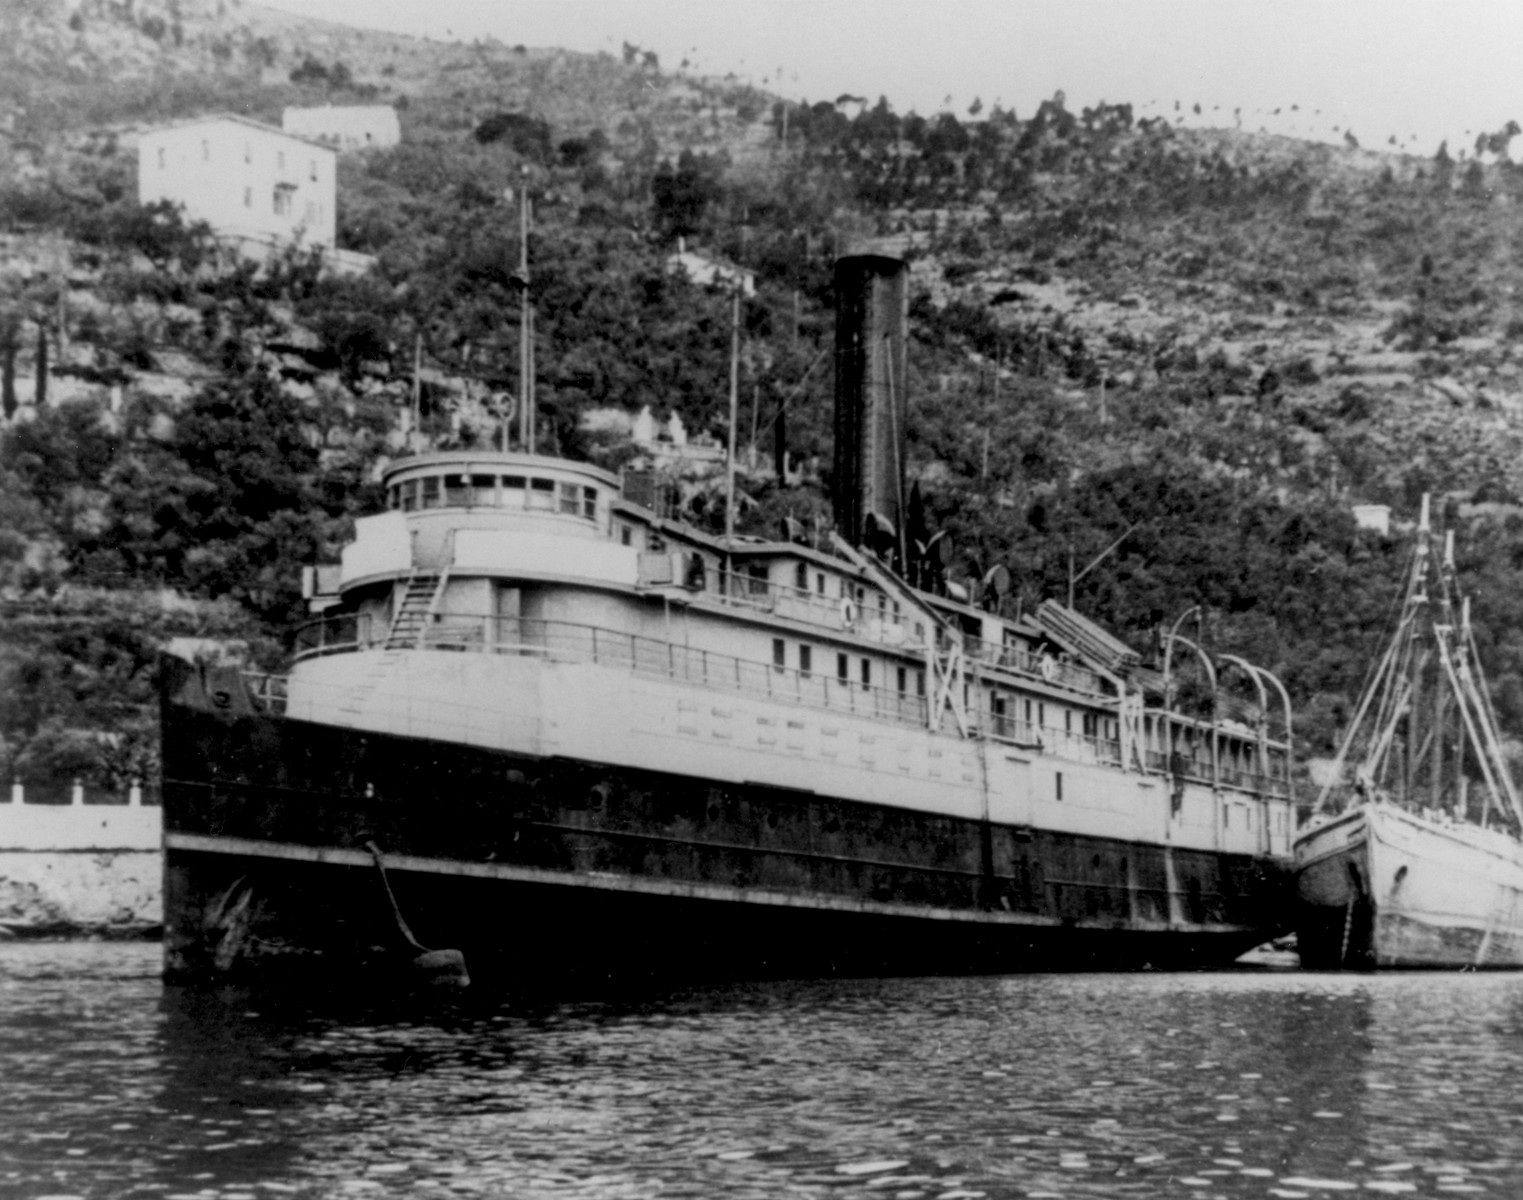 View of the illegal immigrant ship, the President Warfield/Exodus 1947, docked at Port-de-Bouc, France, prior to its voyage to Palestine.